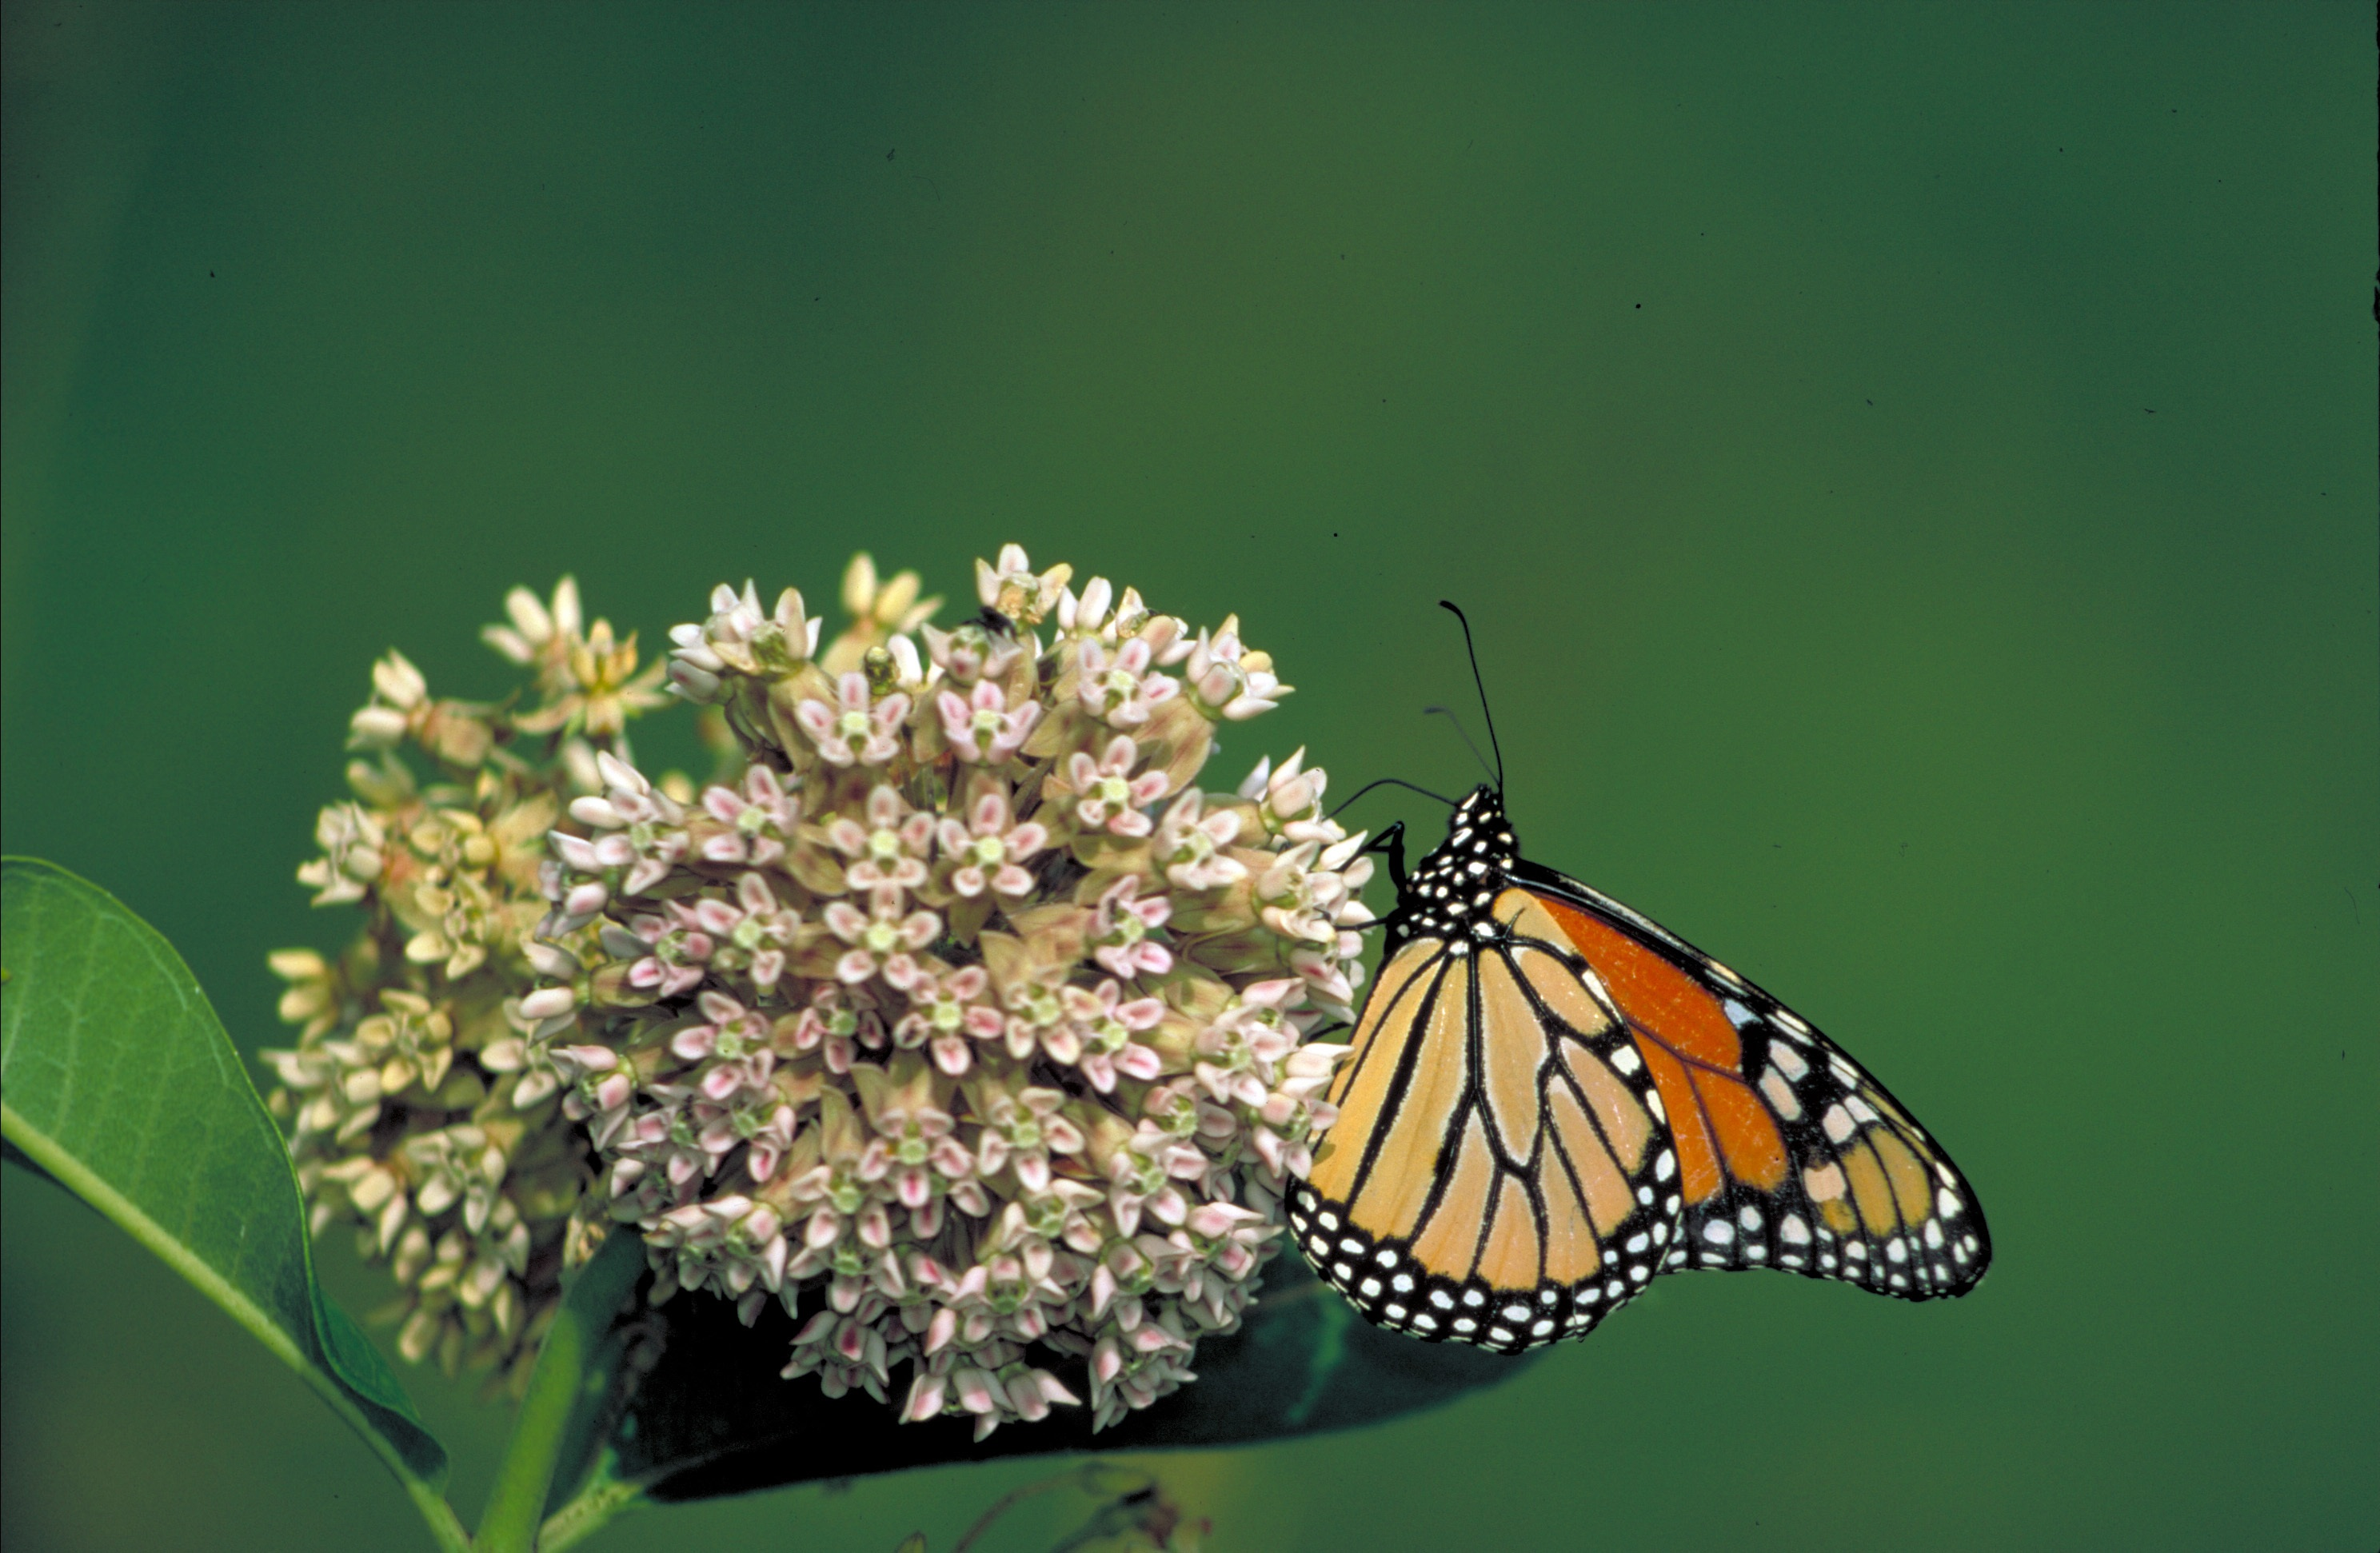 Image shows a Monarch Butterfly perching on pale milkweed flowers with a soft green background.